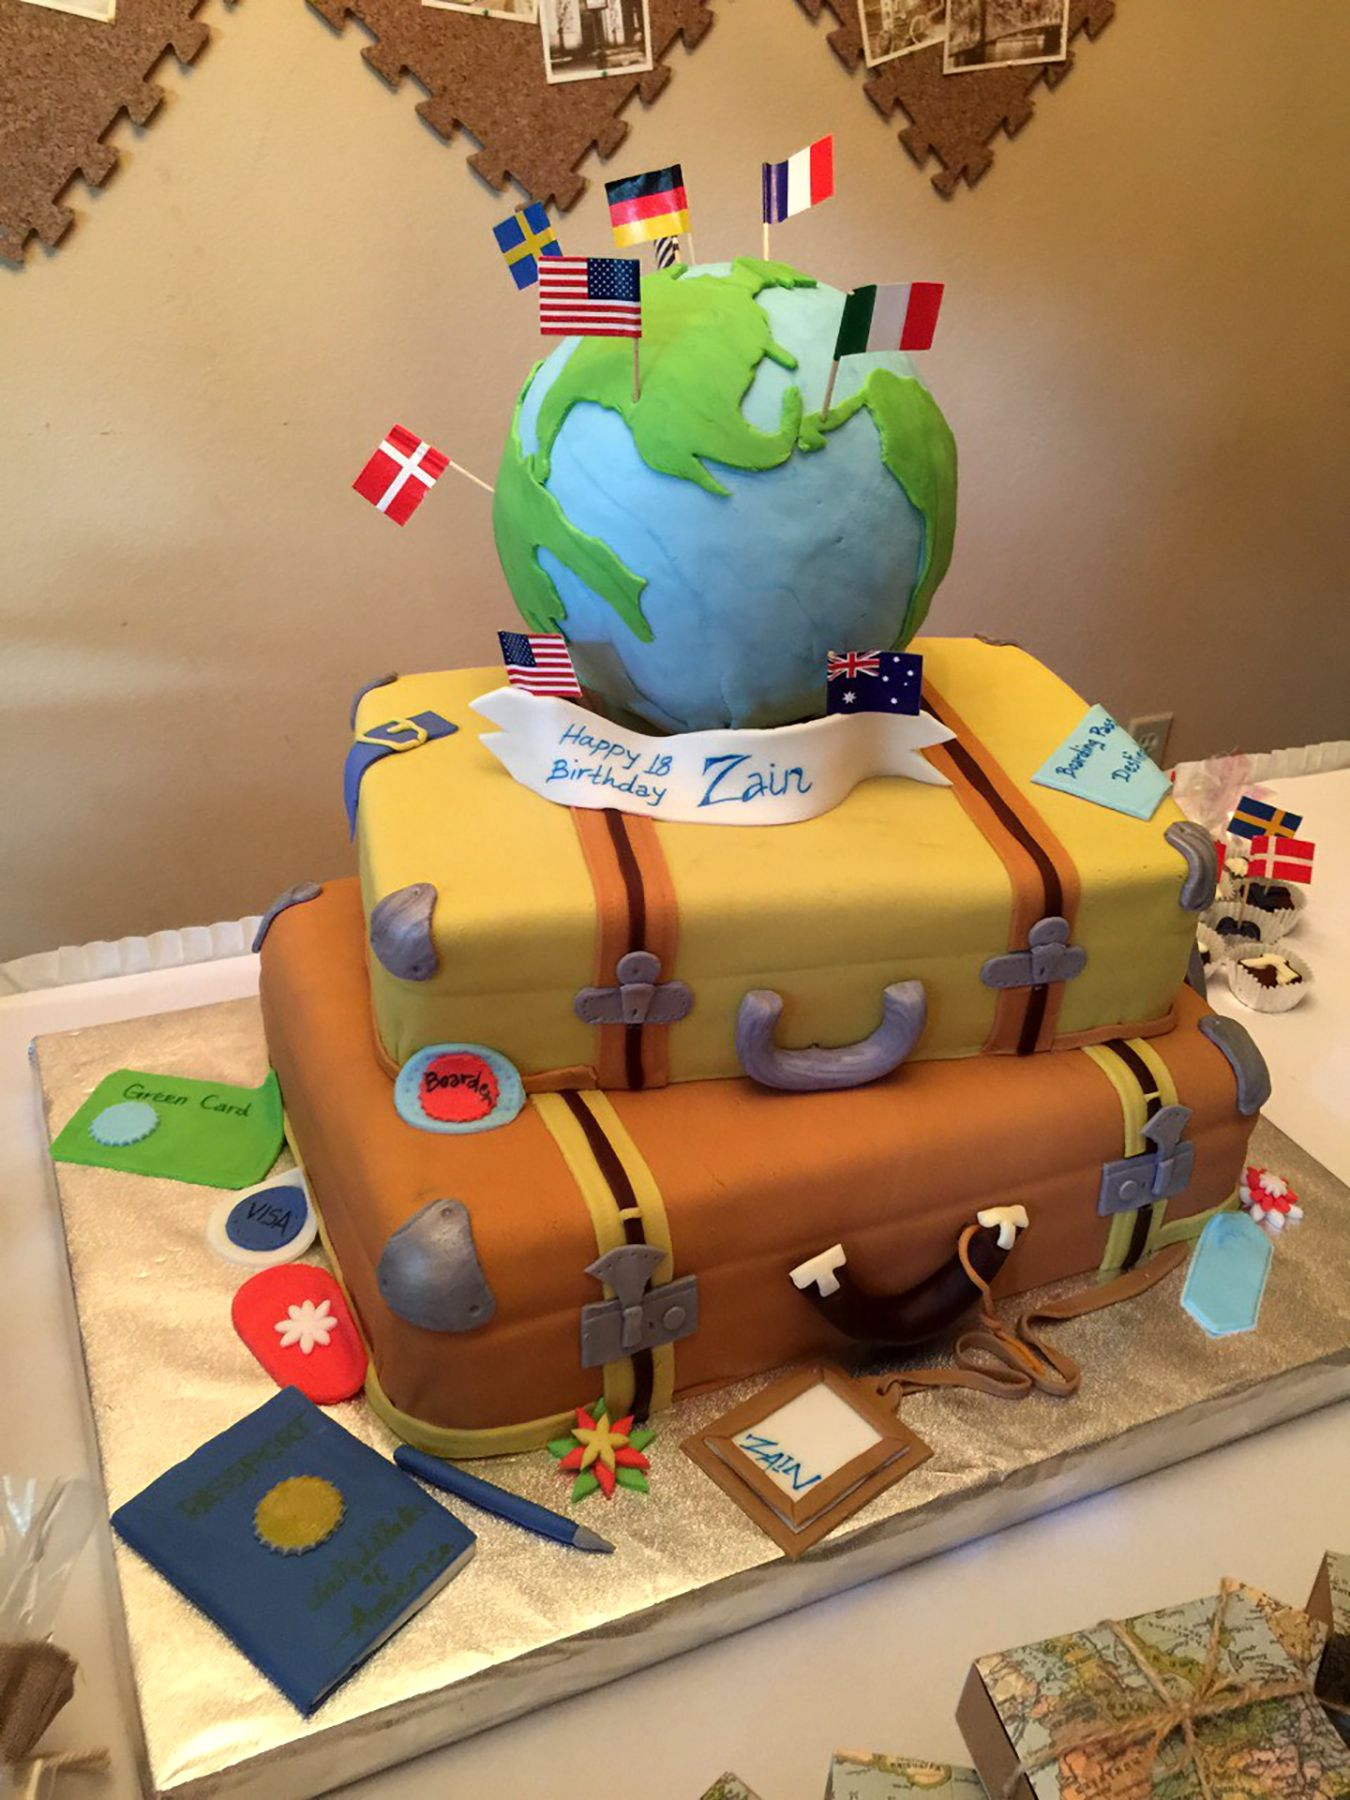 Fine Fondant Cake Around The World Travel Theme Cake For Zains 18Th Birthday Cards Printable Opercafe Filternl